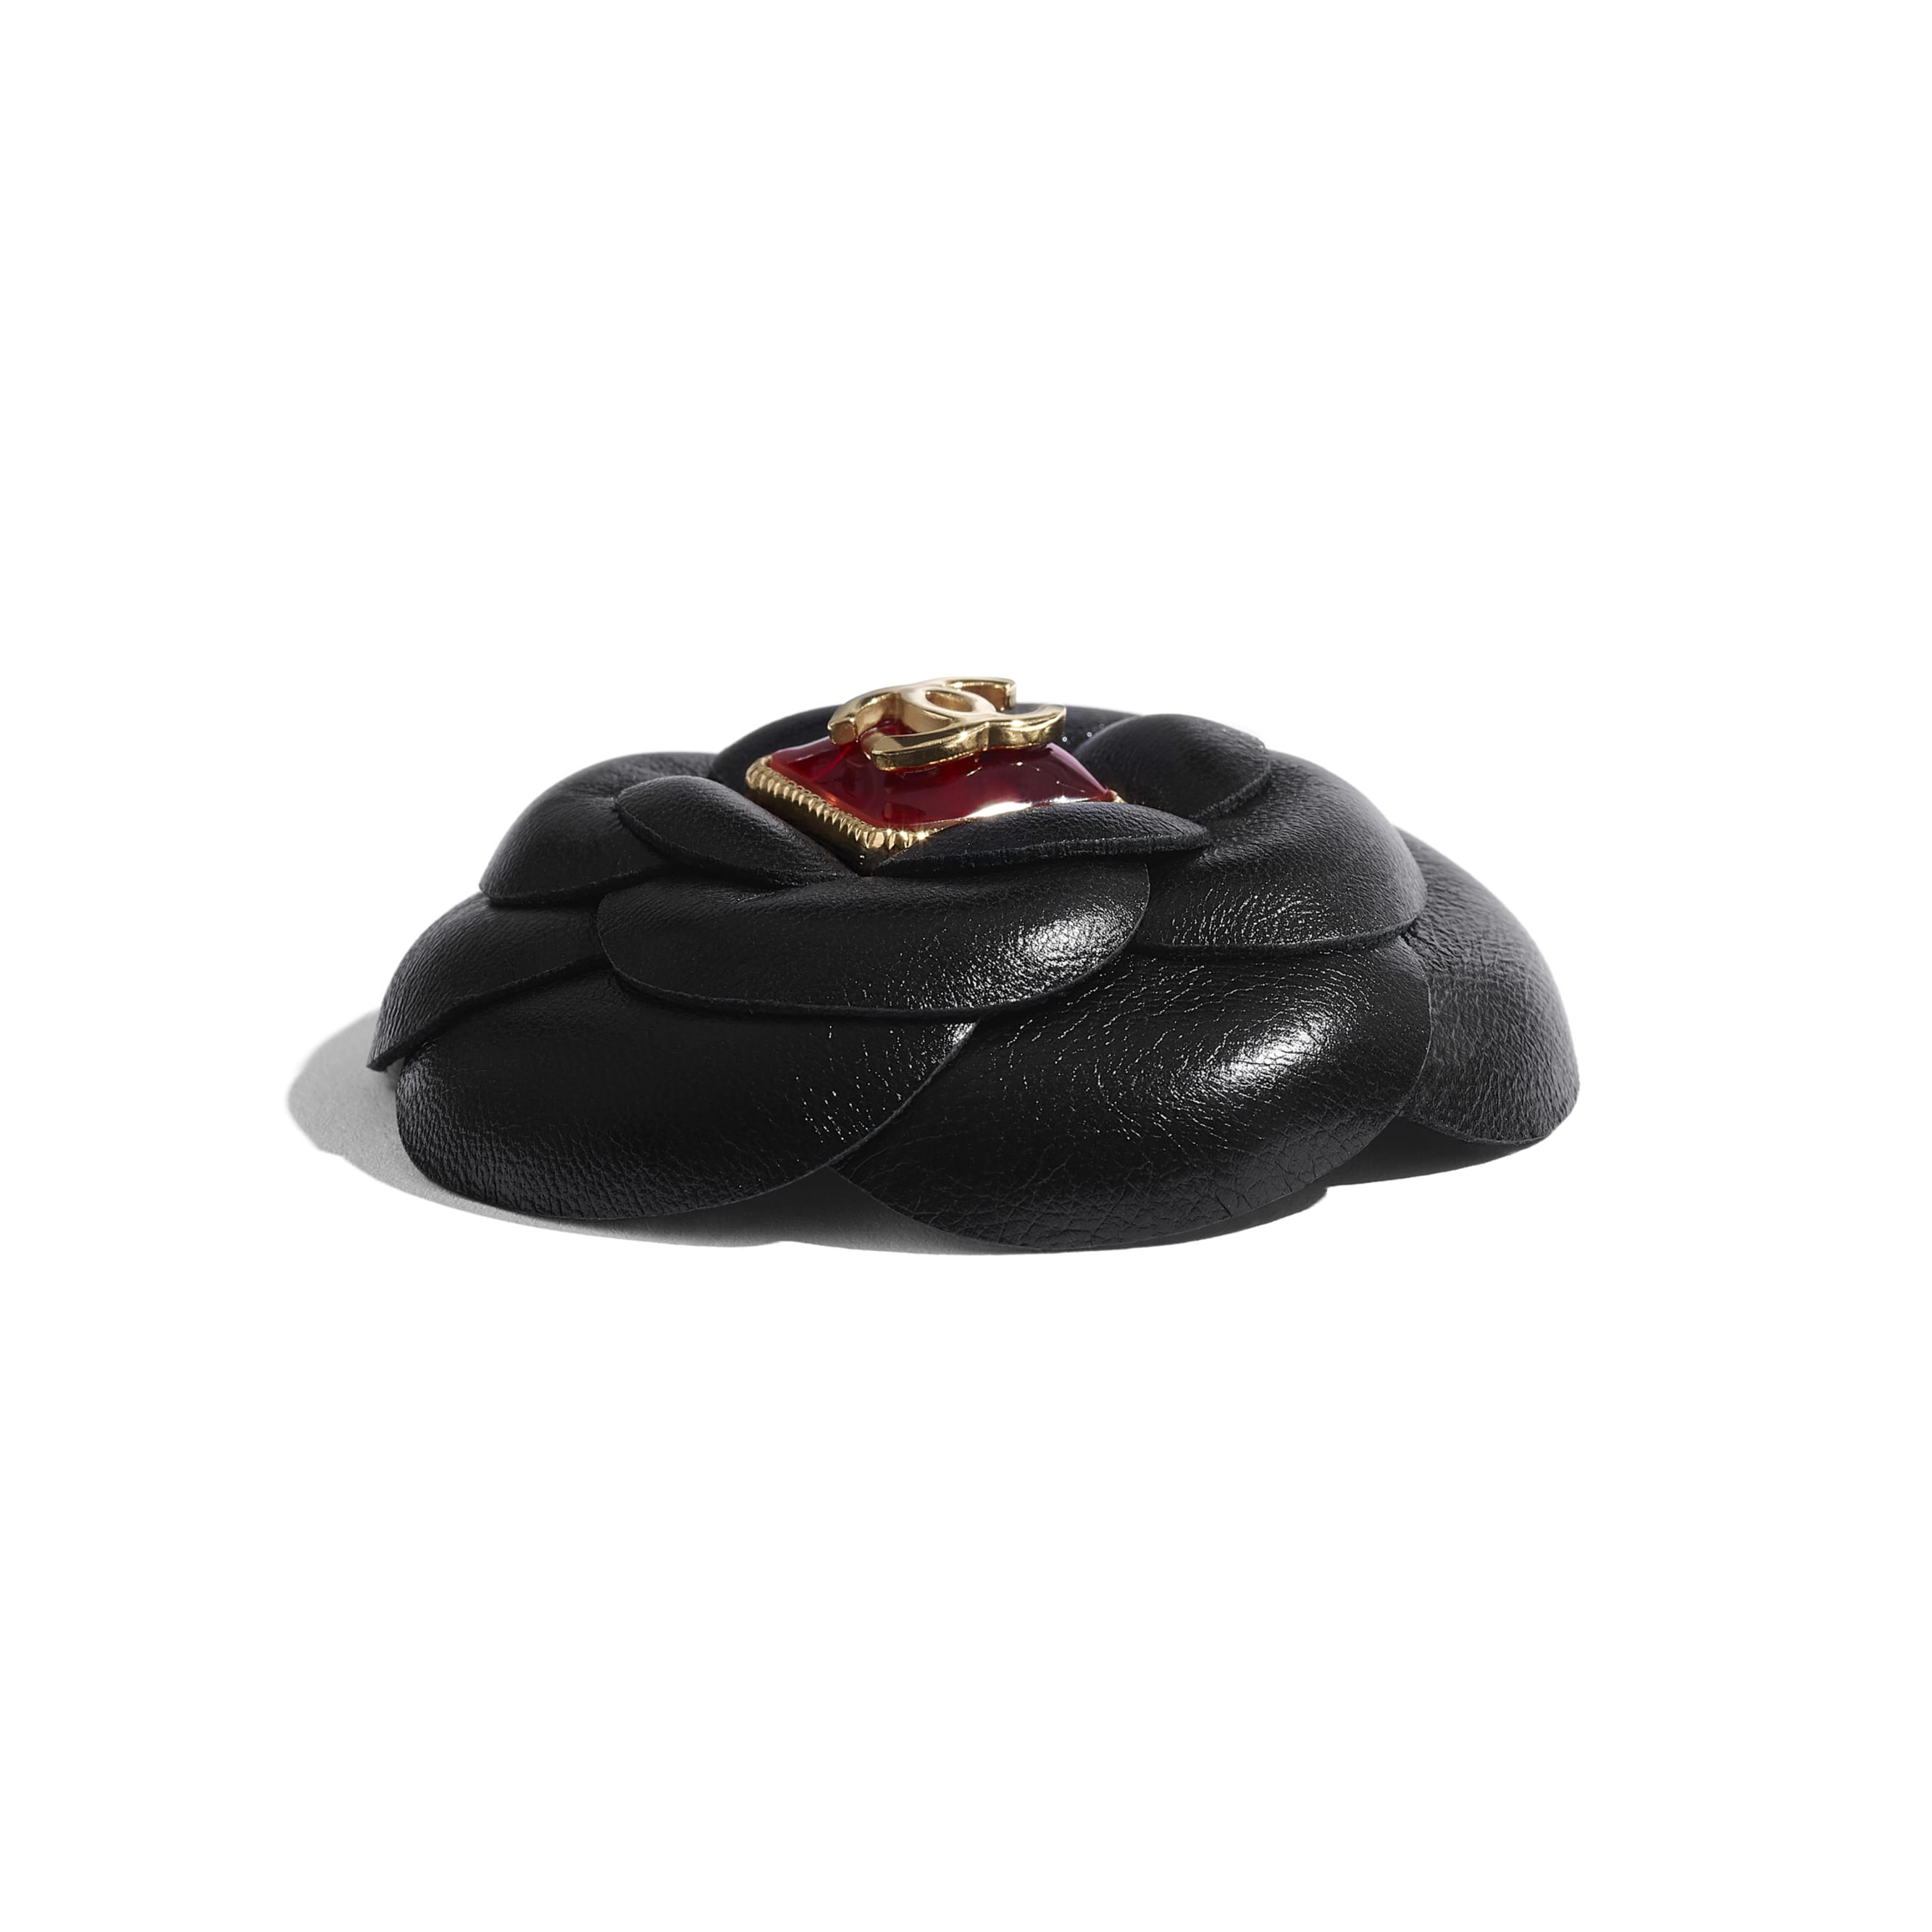 Hair Clip - Black & Burgundy - Lambskin, Resin & Gold-Tone Metal - CHANEL - Alternative view - see standard sized version